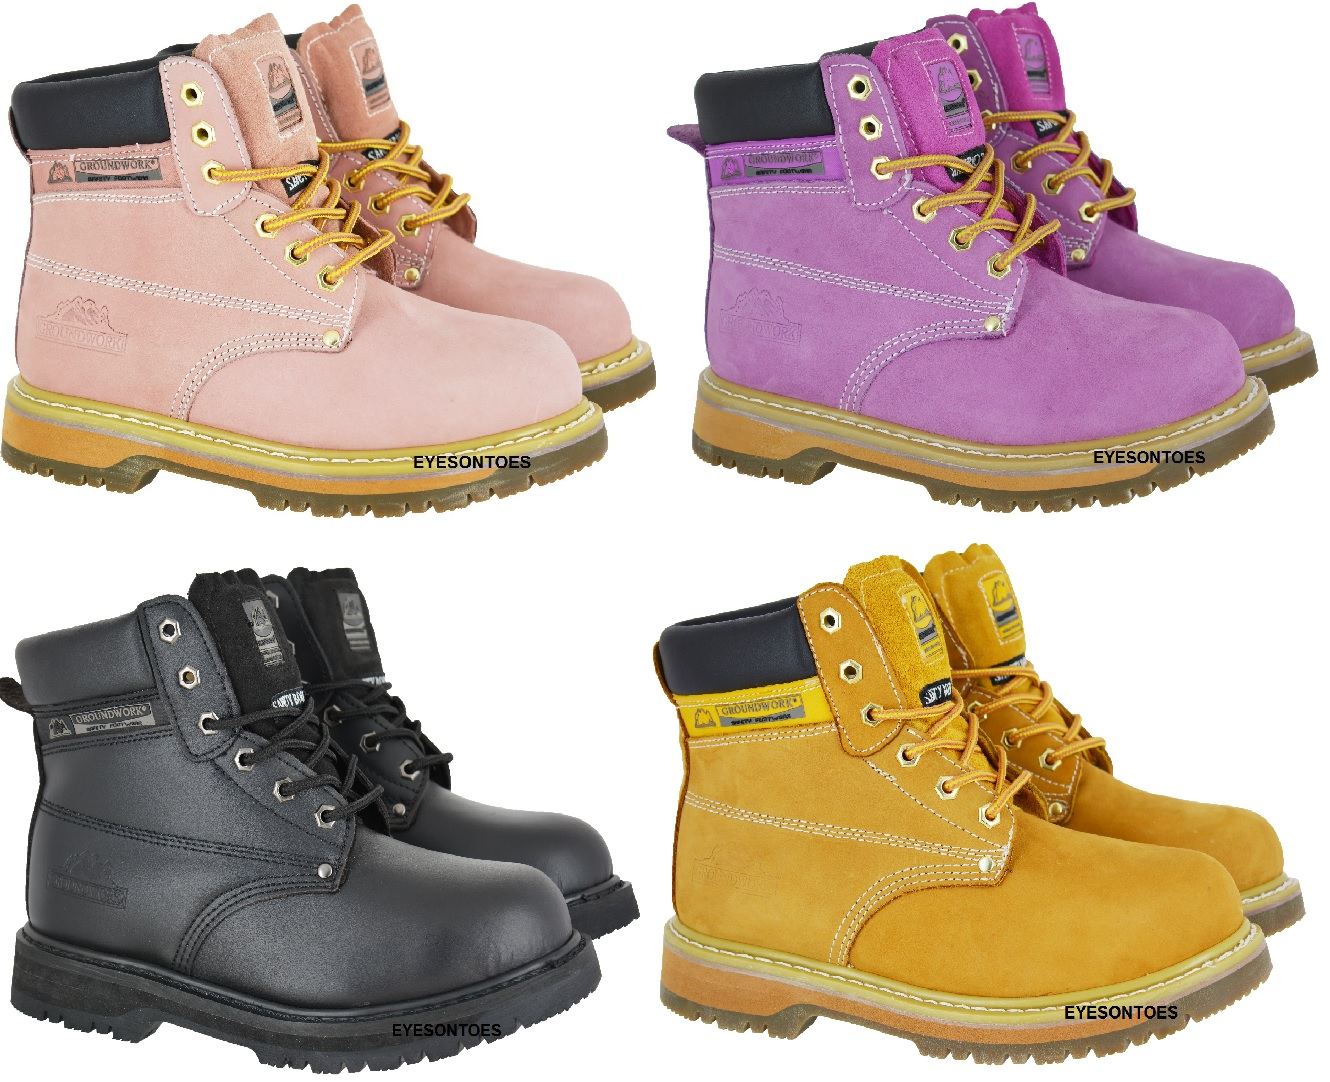 Creative Clothing Shoes Accessories Gt Women39s Shoes Gt Boots